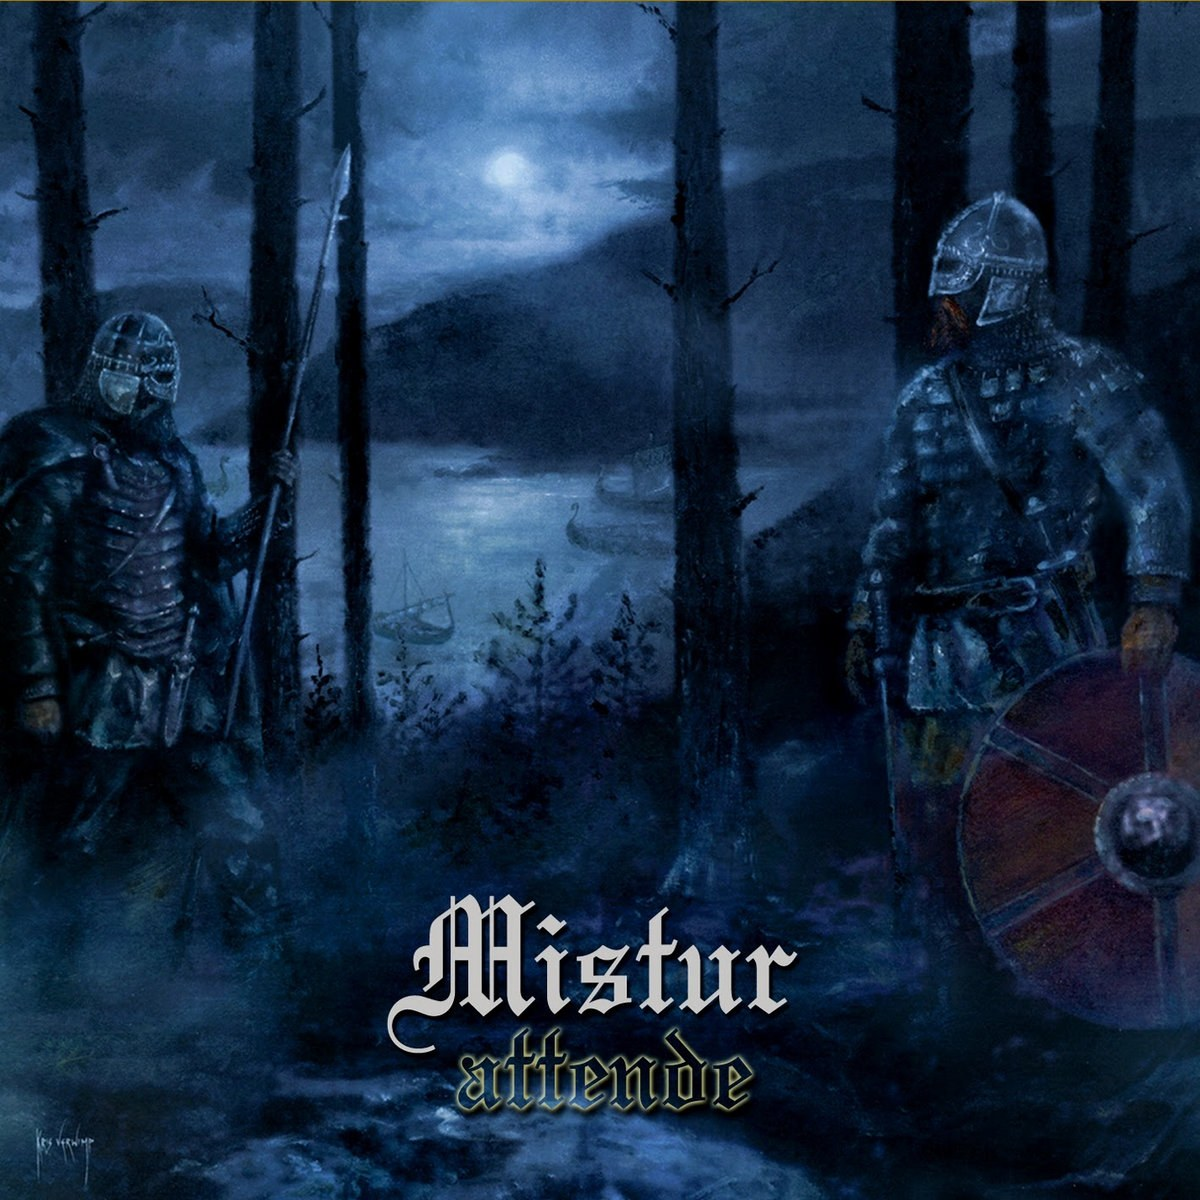 Review for Mistur - Attende